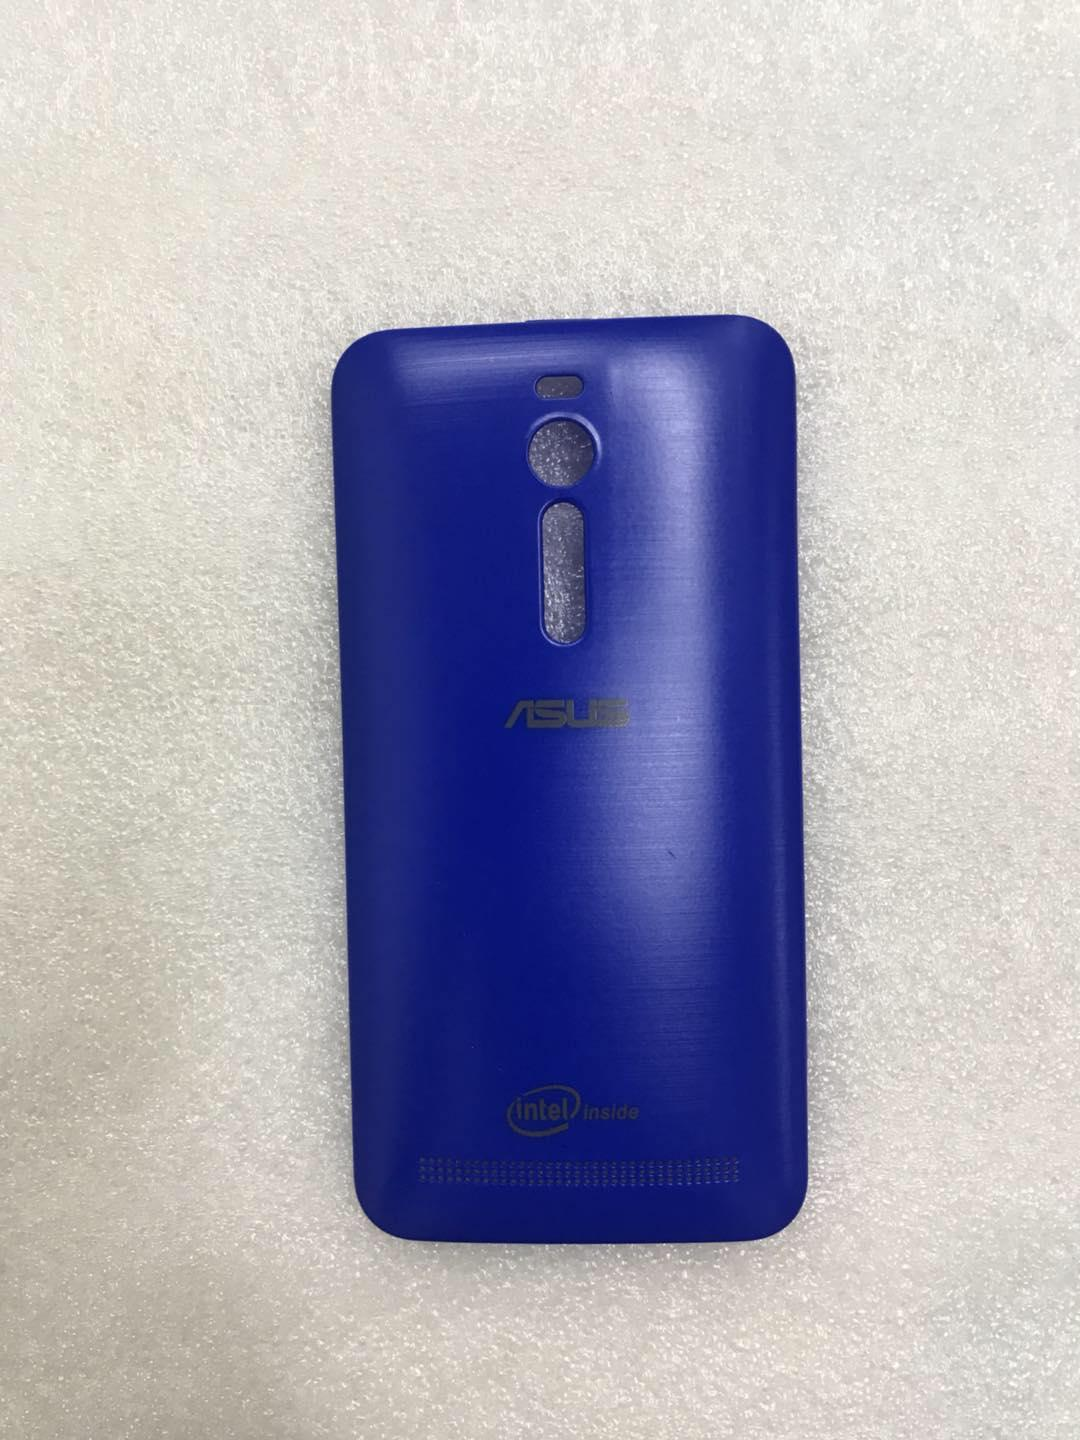 Asus Phone Case Philippines Cover For Sale Prices Alumunium Bumper Zenfone 2 55 Reviews Lazada